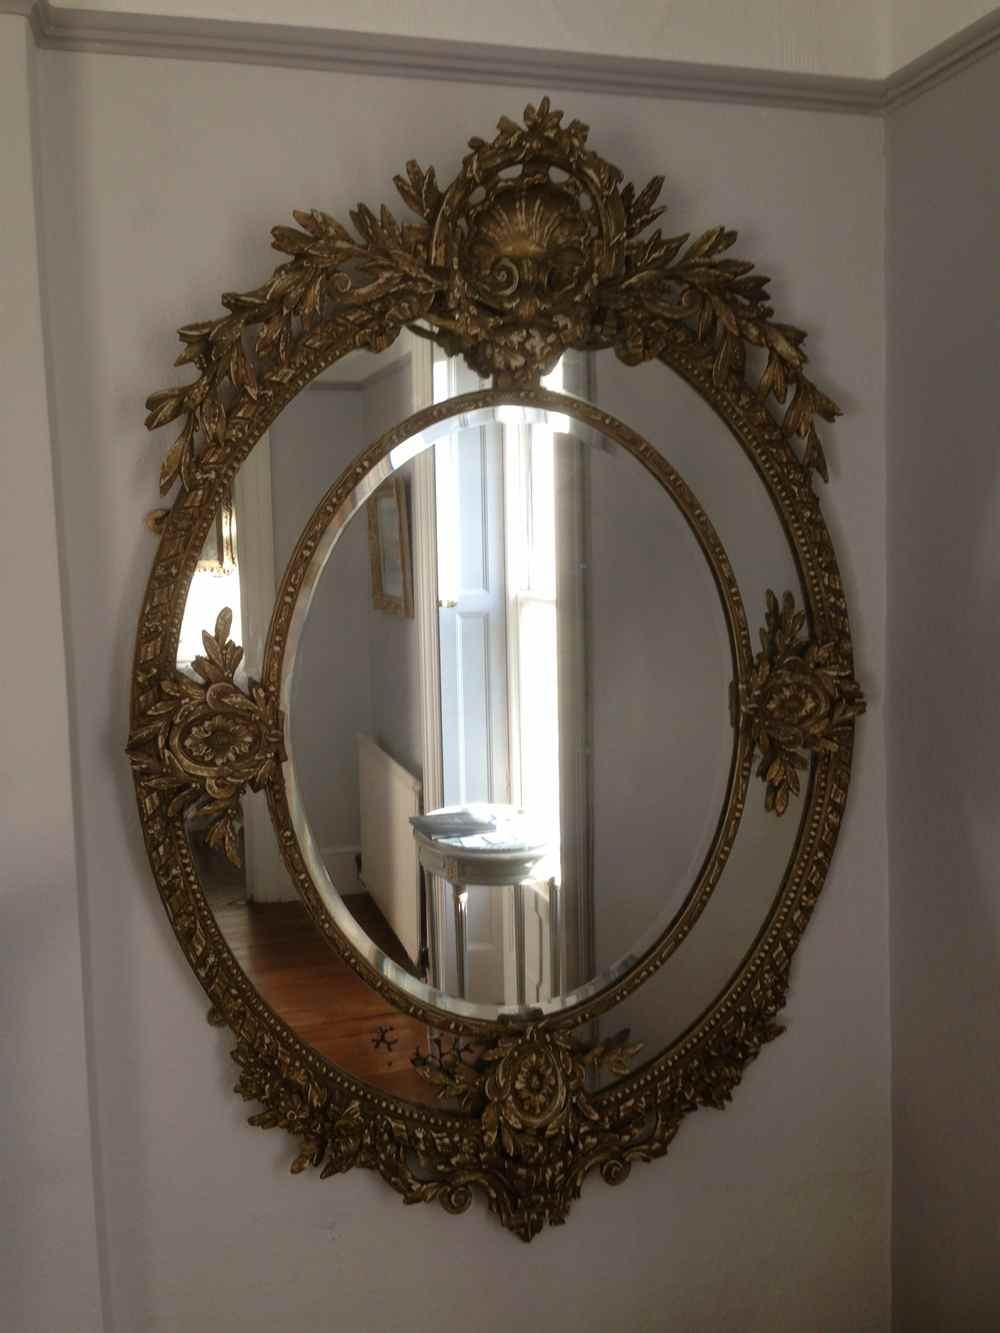 Large Antique Oval Wall Mirror Large Antique Oval Wall Mirror antique oval wall mirrors antique oak wall mirrors classic 1000 X 1333